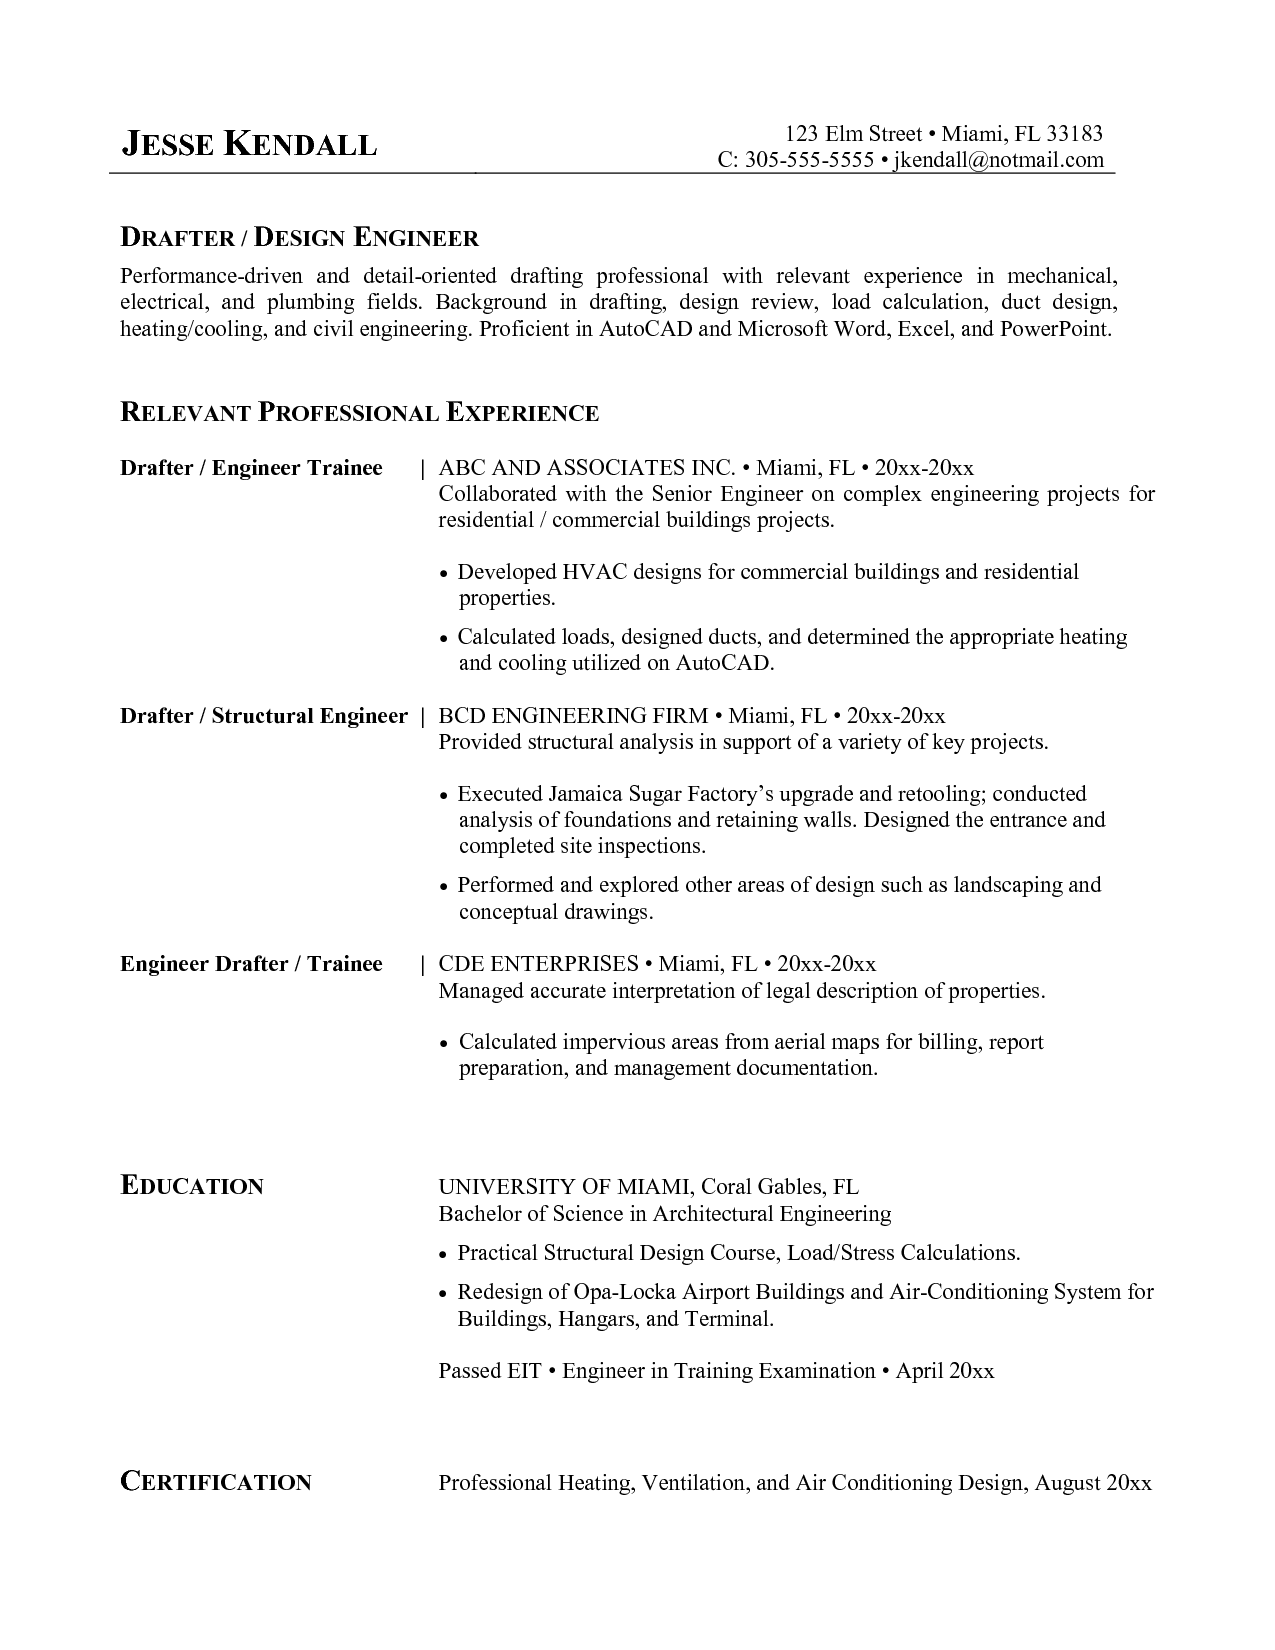 great hvac resume samplehvac resume samples templateshvac resume formathvac resume objectivehvac resume cover letterhvac resume example - Hvac Resume Examples